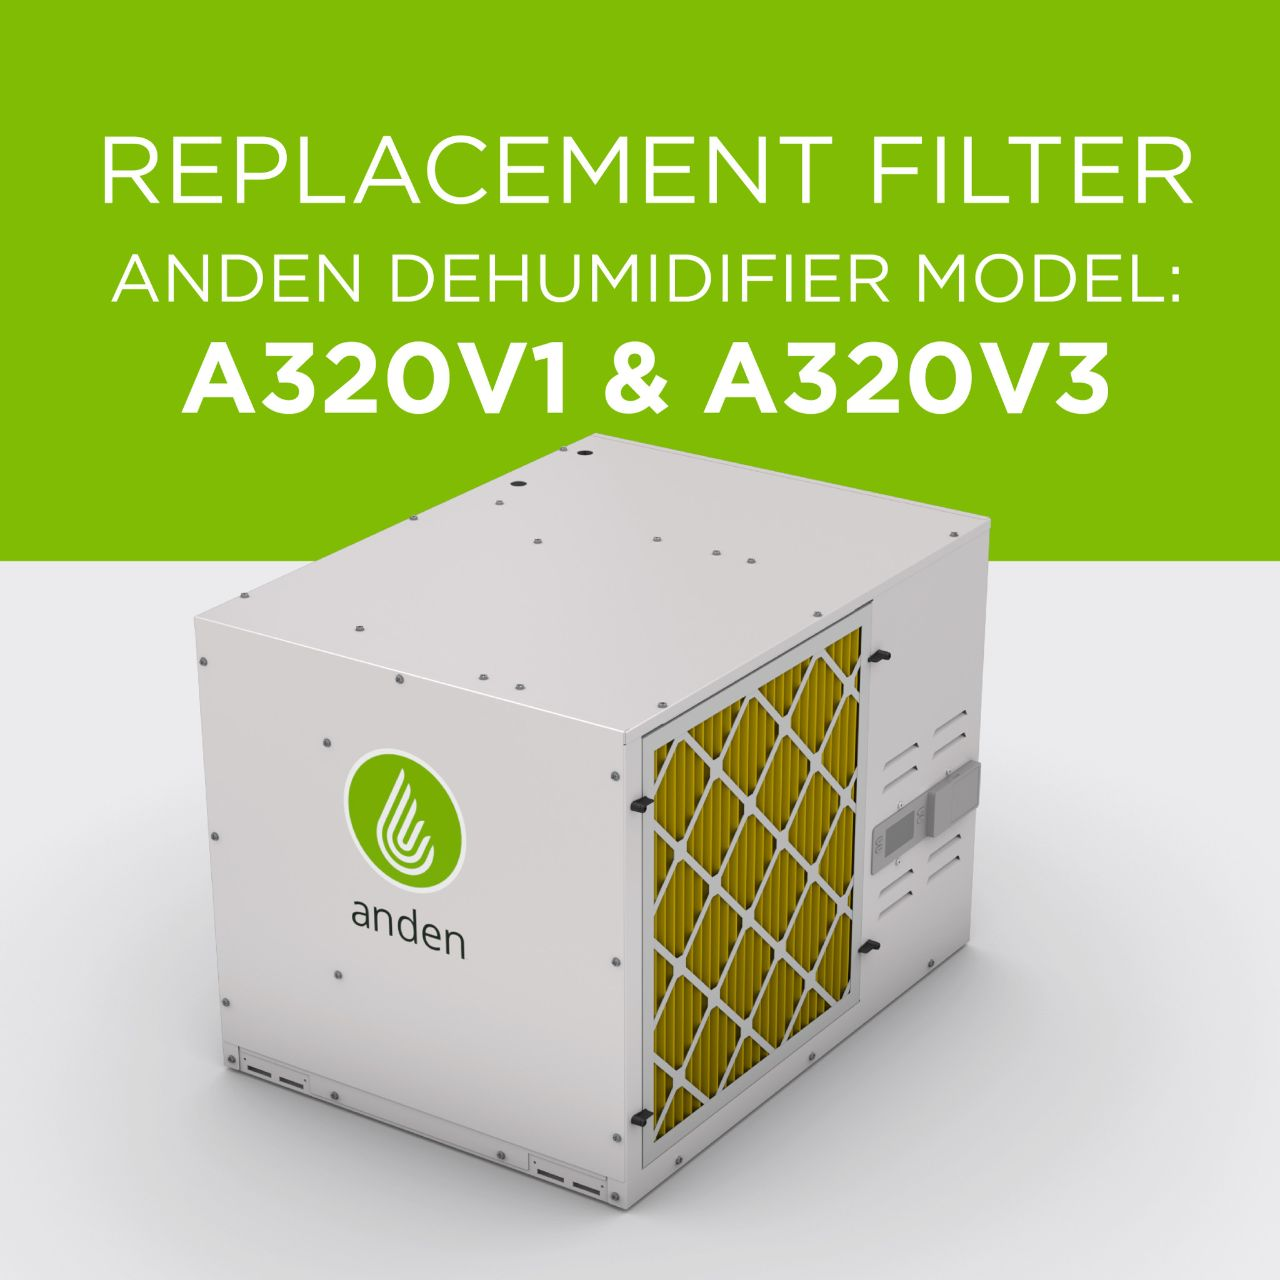 Anden-Replacement Filter-Dehumidifier-A320V1-A320V3-Replacement Part